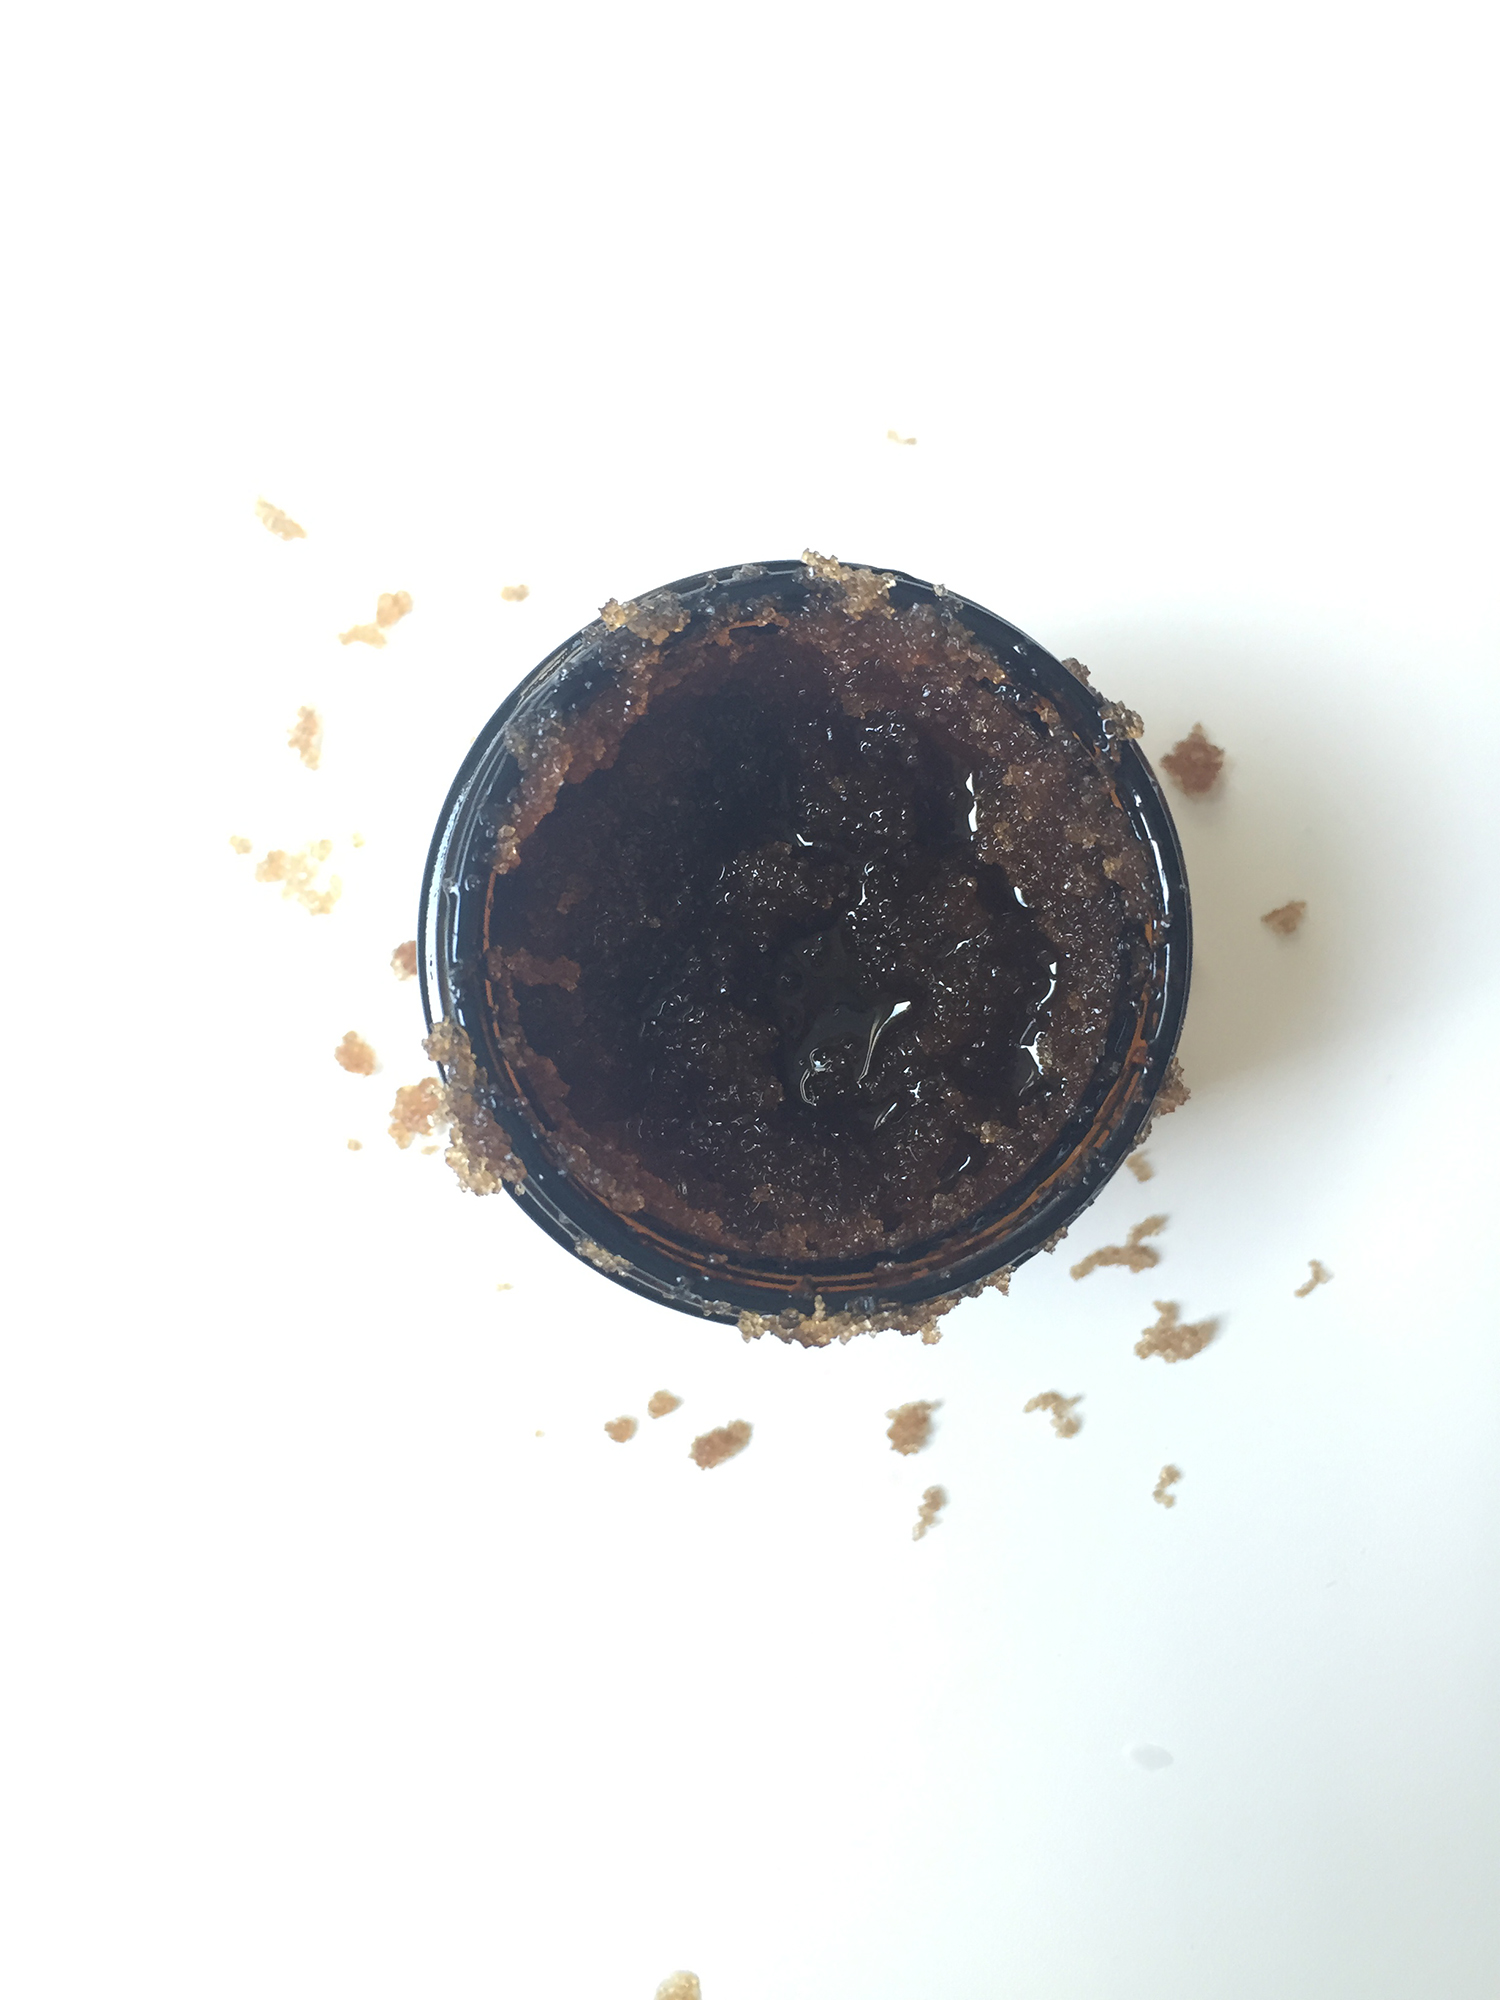 Skincare: Brown Sugar Body Scrub